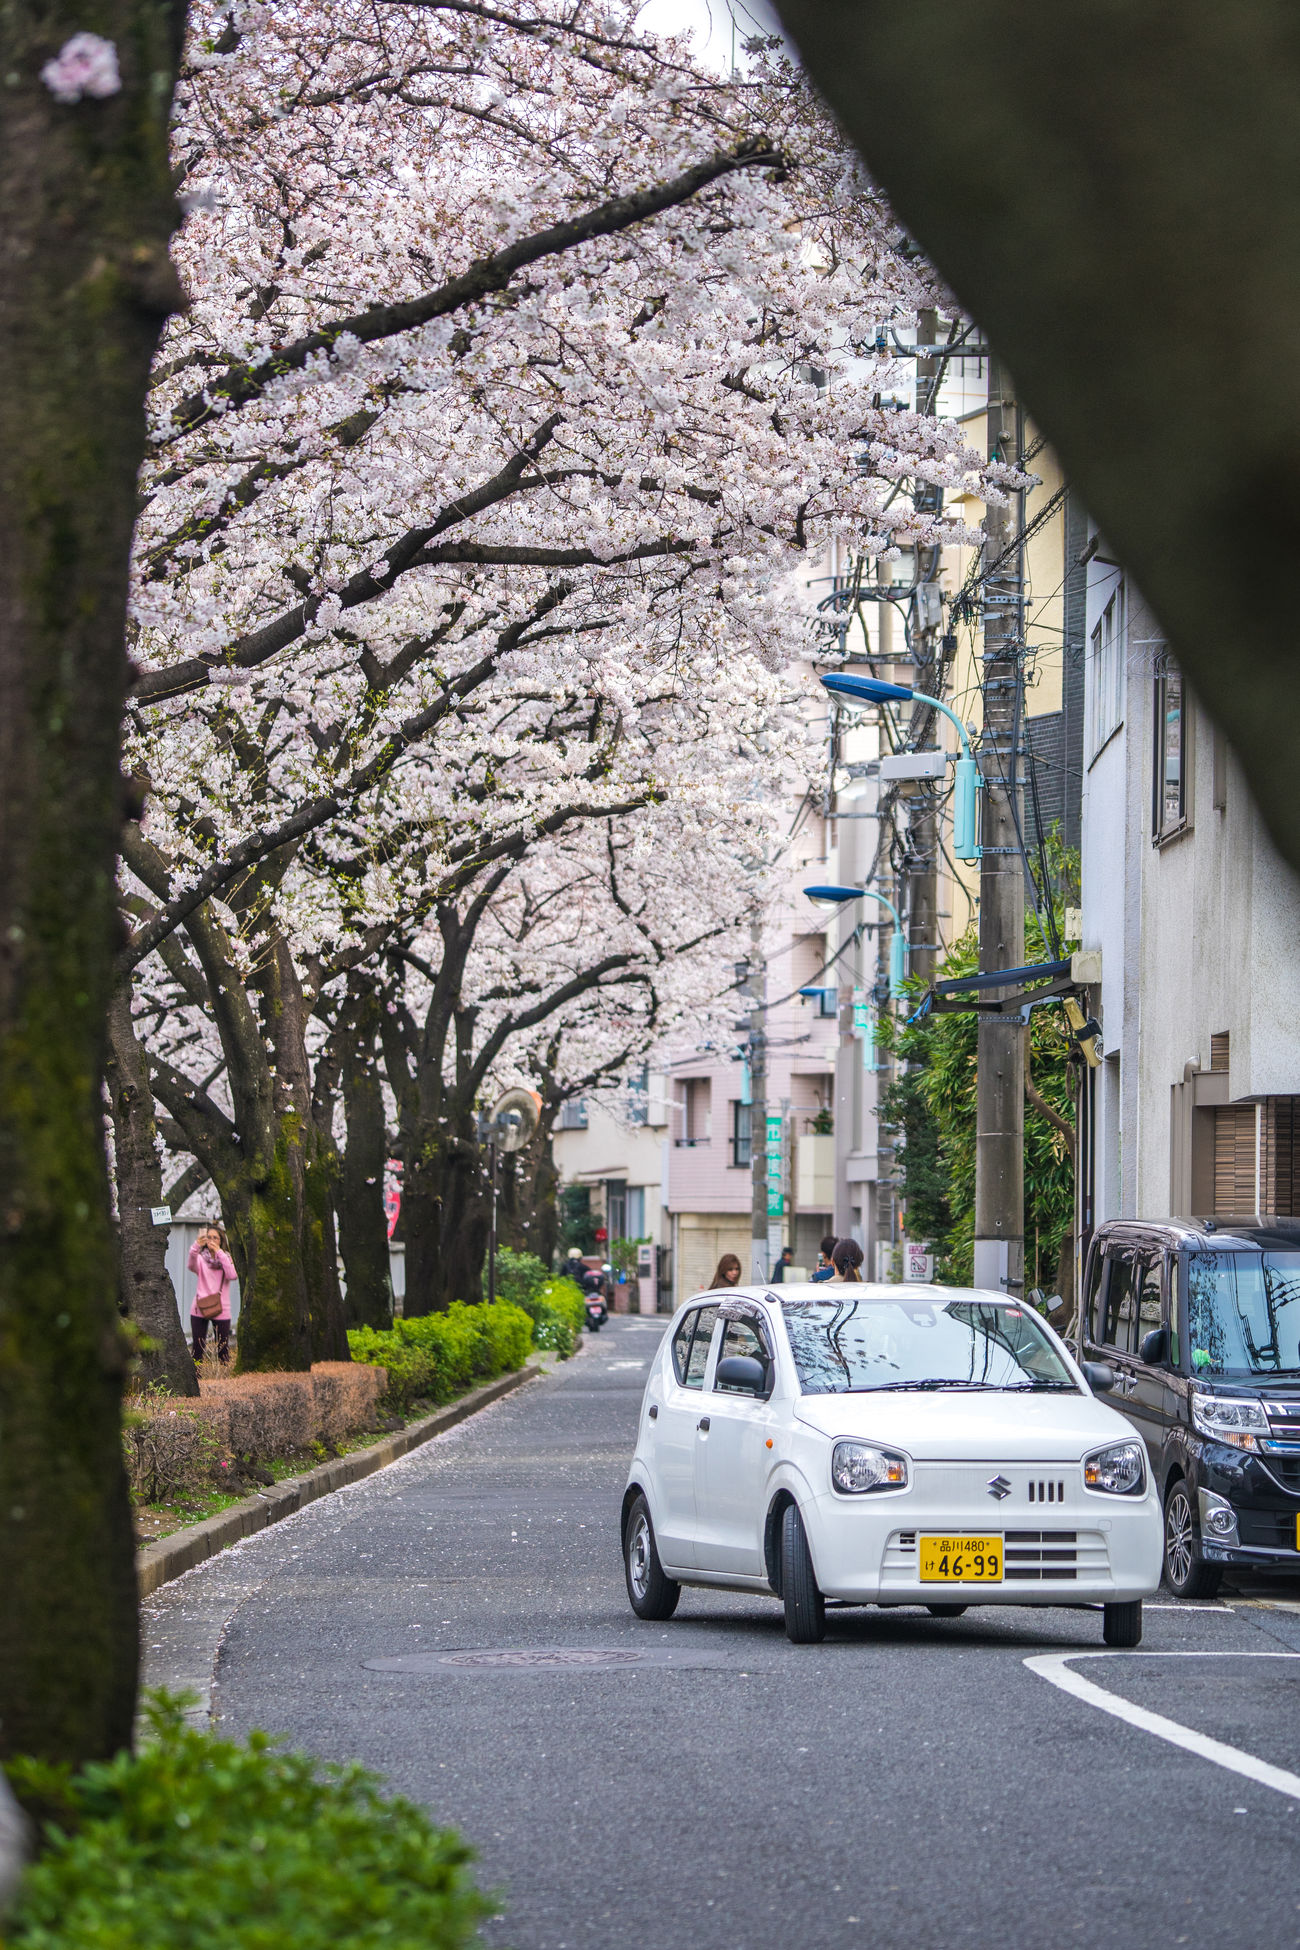 @ Waseda River in blooming Architecture Branch Building Exterior Built Structure Car Cherry Blossom Cherry Blossoms City Day Fragility Japan Japan Photography Japanese  Land Vehicle Mode Of Transport Nature No People Outdoors Police Force River Road Sakura Transportation Tree Waseda